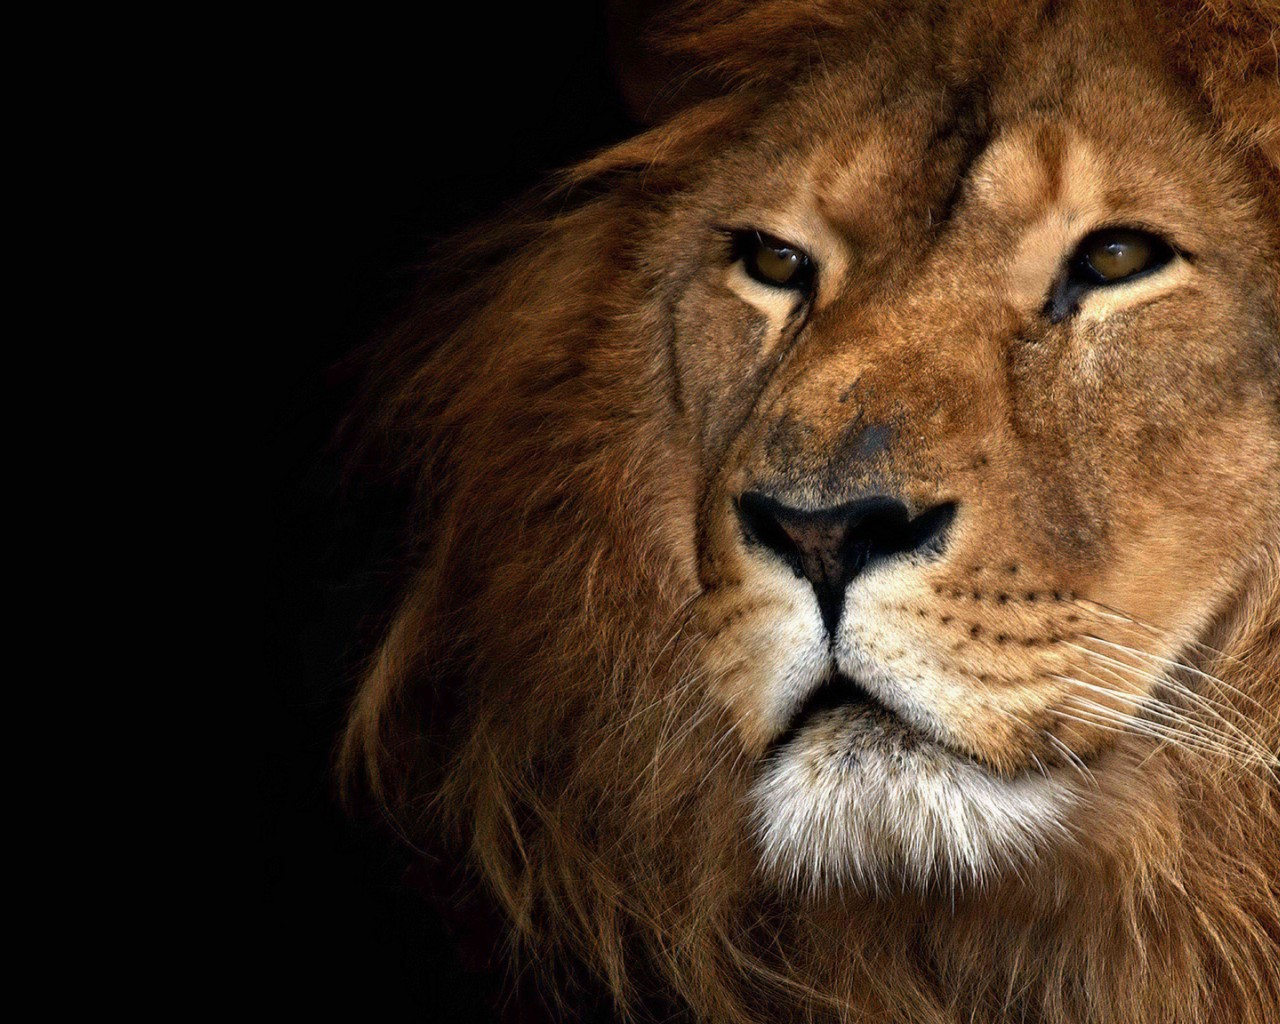 Lions Images The King Hd Wallpaper And Background Photos 31743924